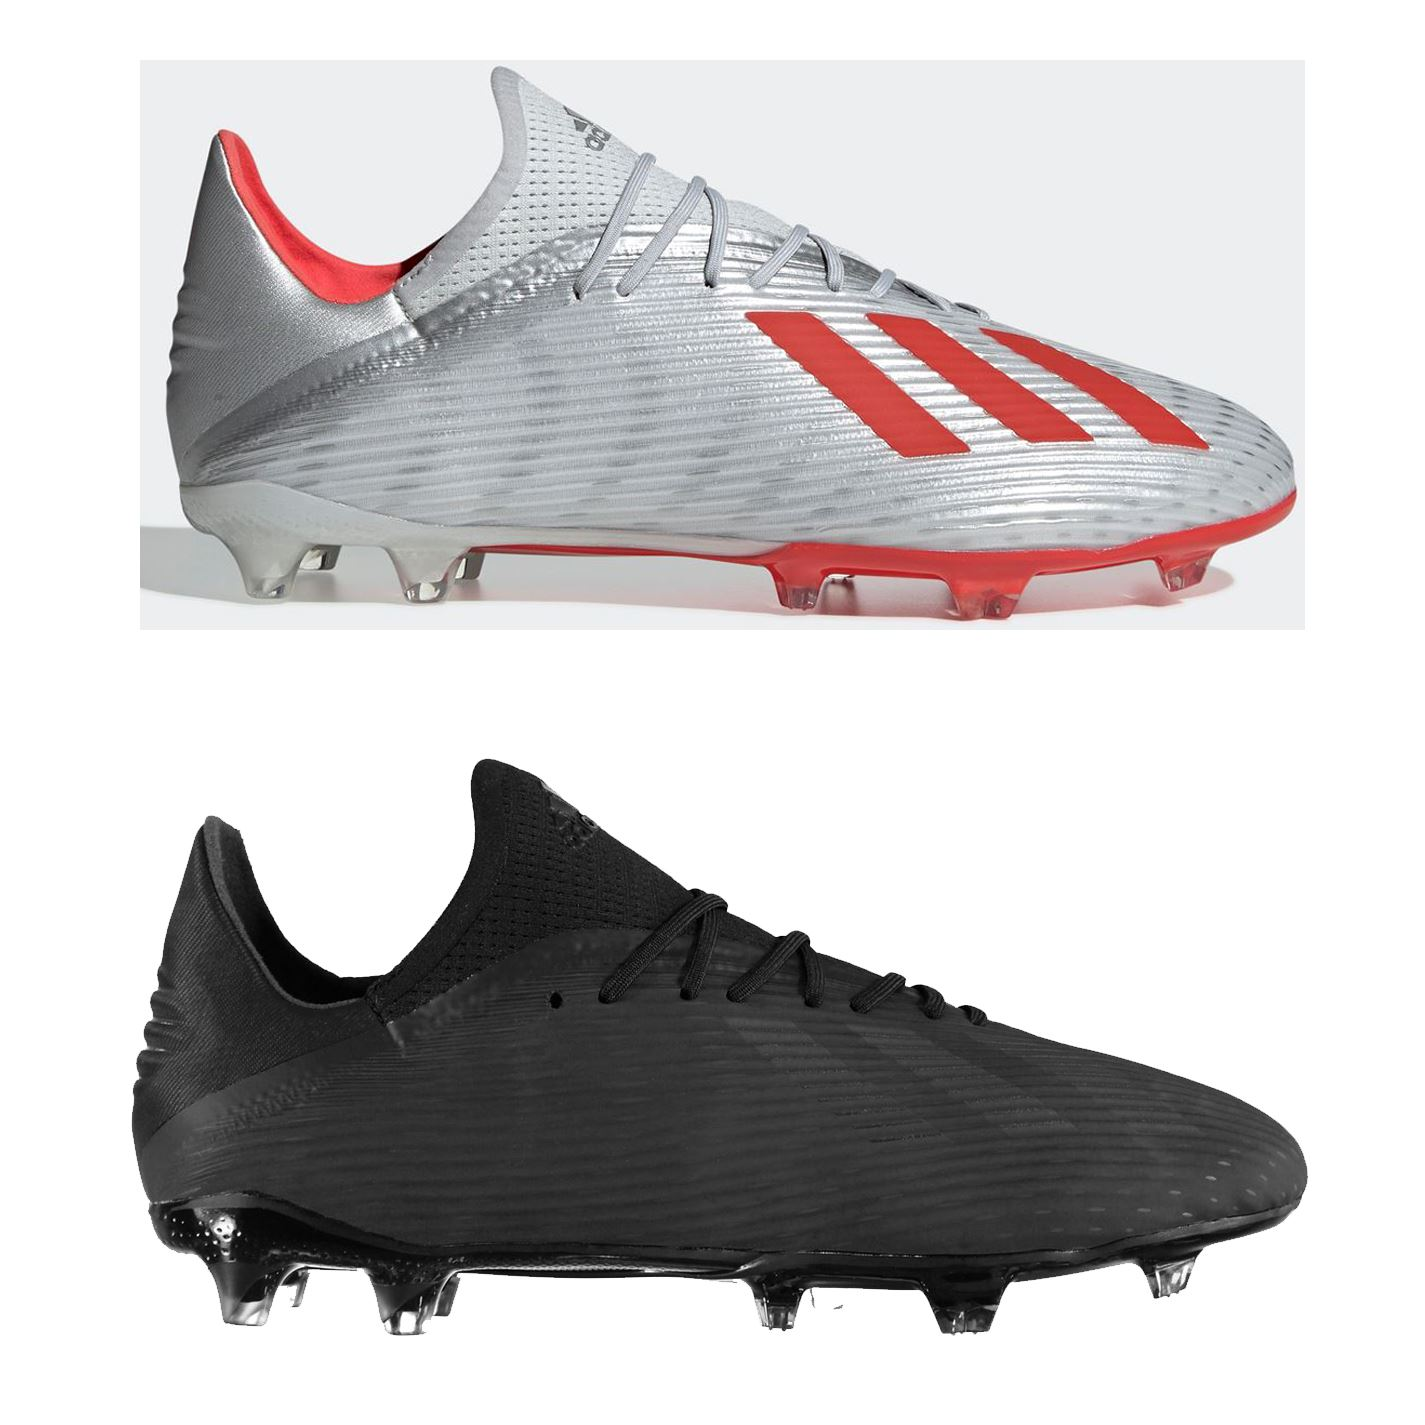 Details about adidas X 19.2 Firm Ground FG Football Boots Mens Soccer  Cleats Shoes Footwear